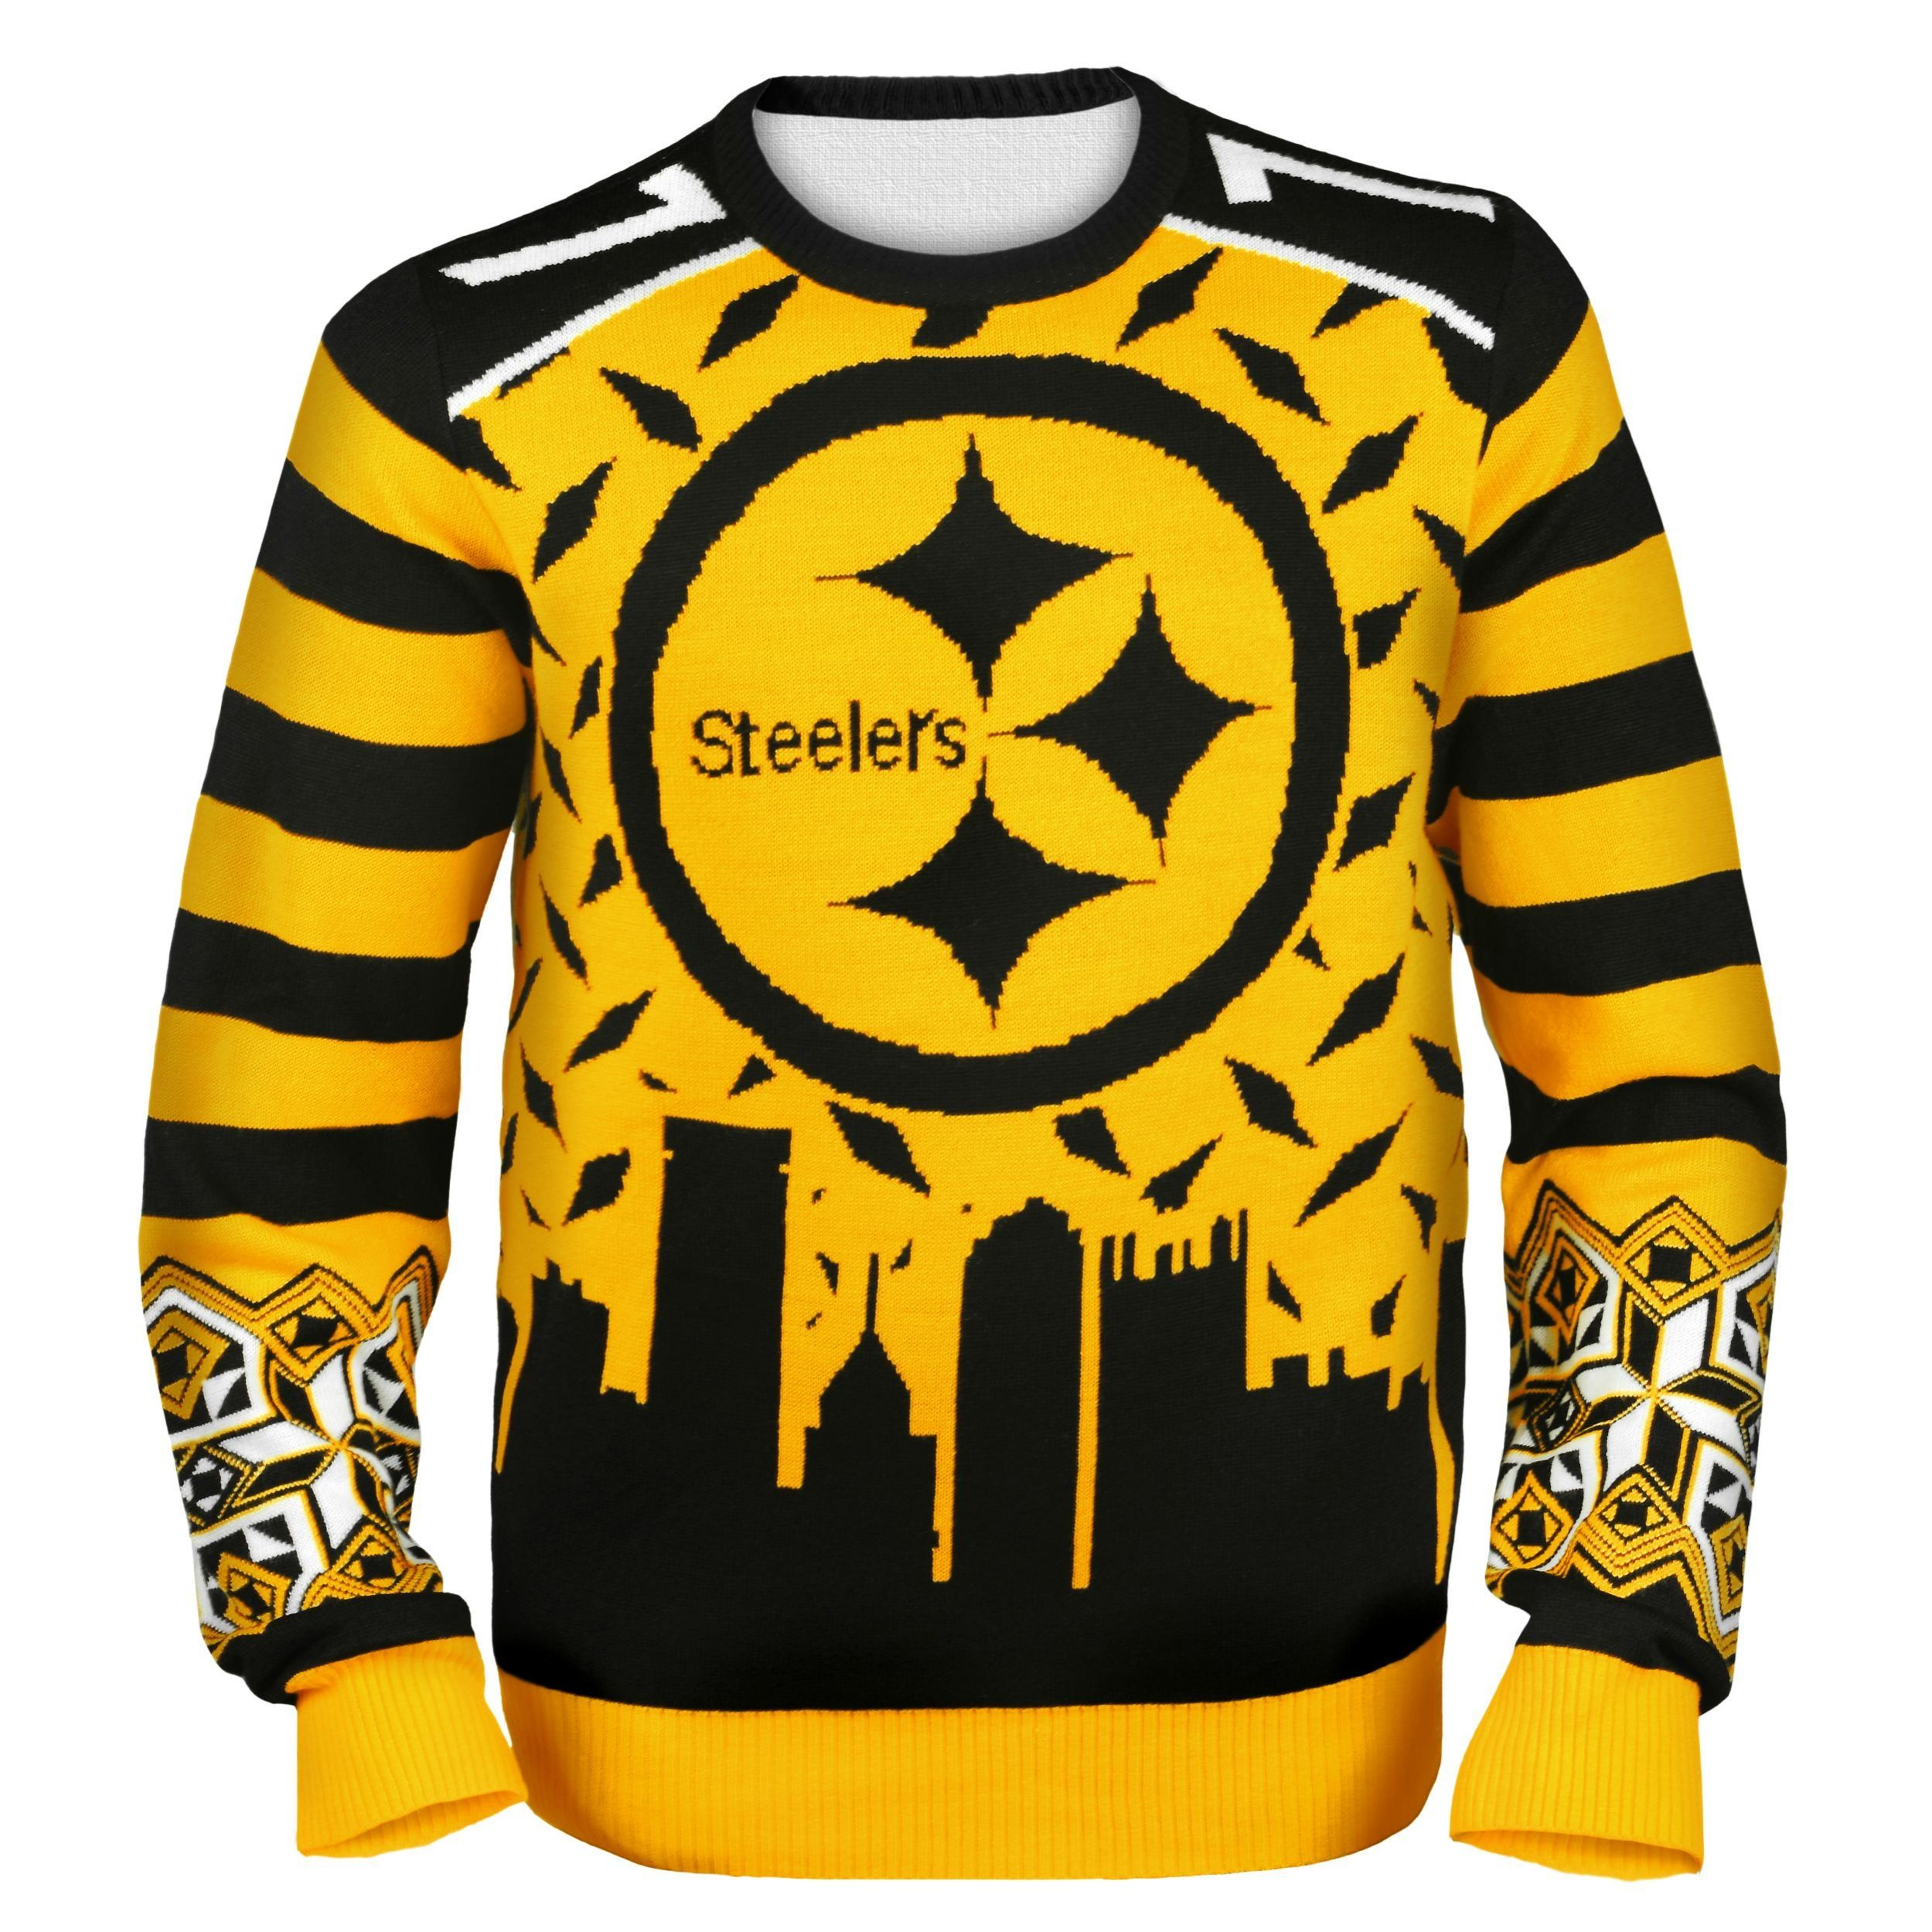 Pittsburgh Steelers Ugly Christmas Sweaters | Black and Yellow ...